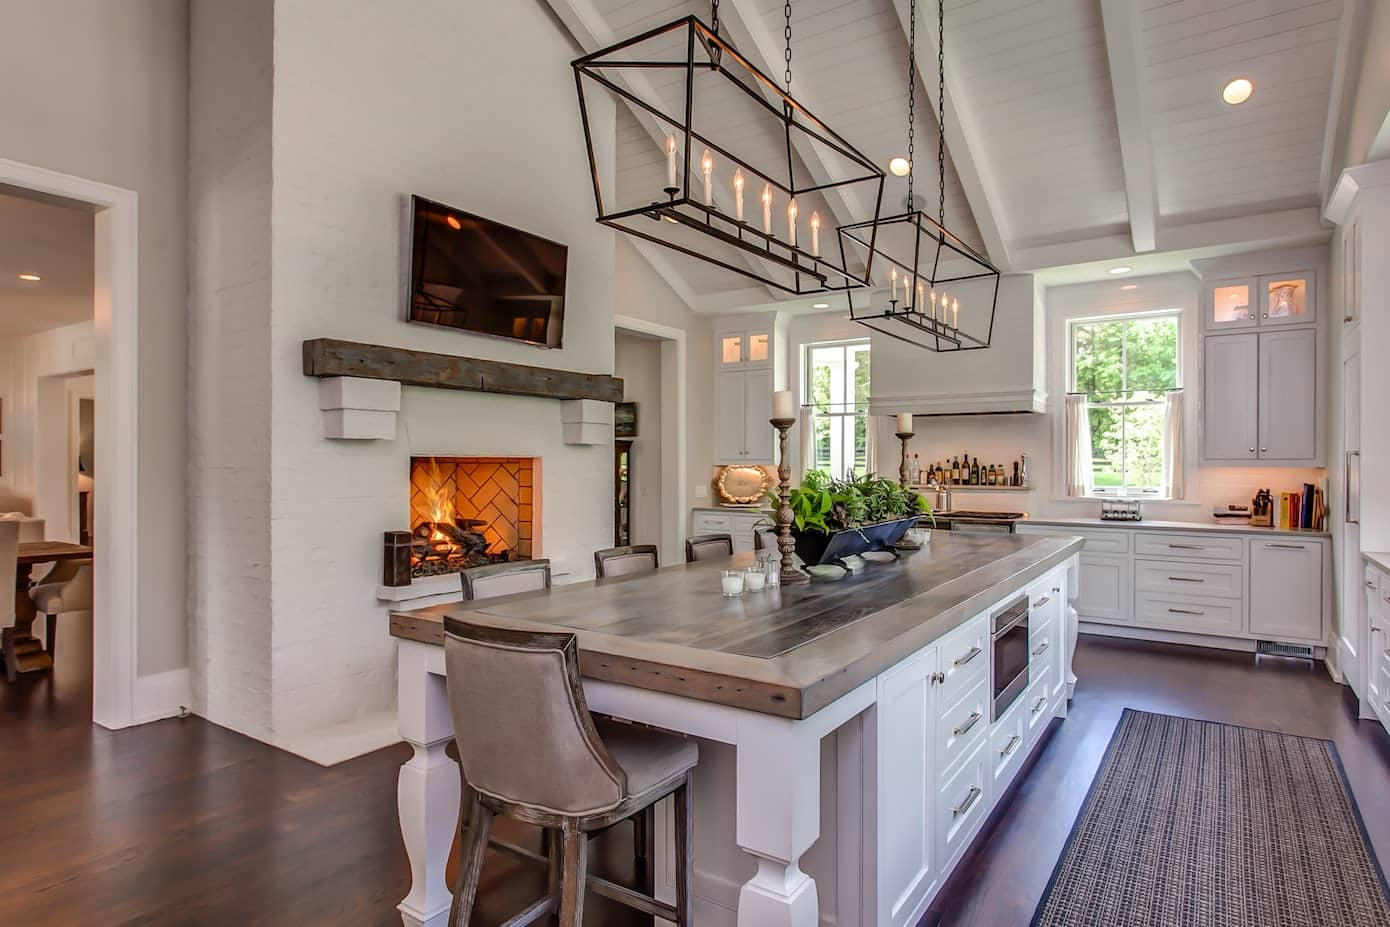 Modern farmhouse kitchen with raked high ceilings, fireplace and large island bench with industrial pendant lighting